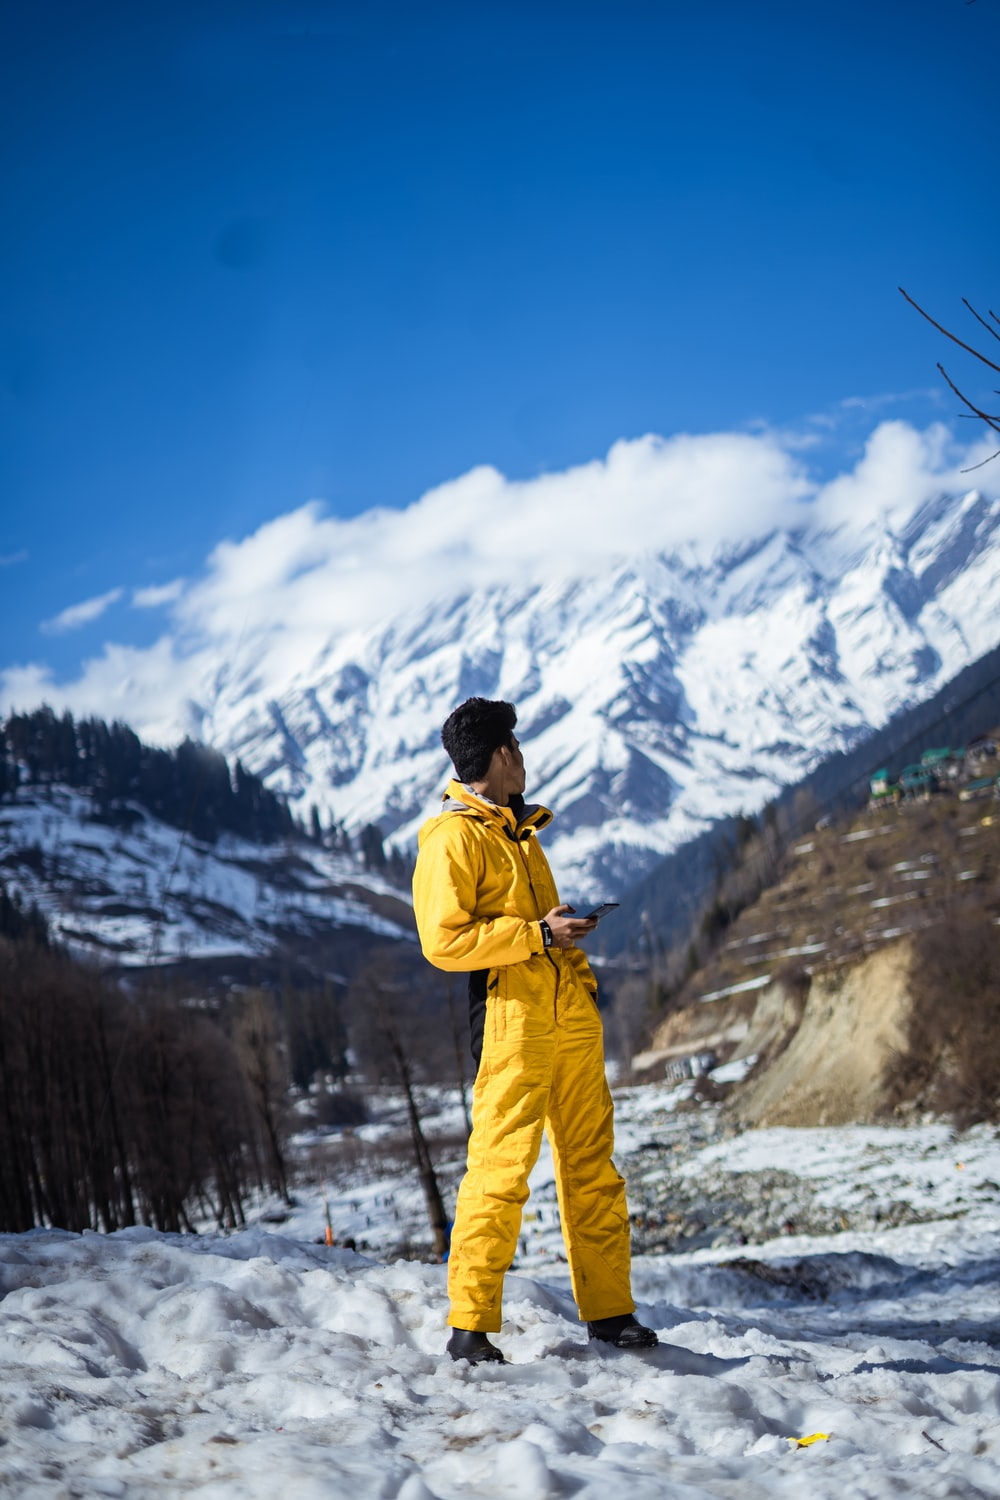 man in yellow jacket and blue pants standing on snow covered ground during daytime